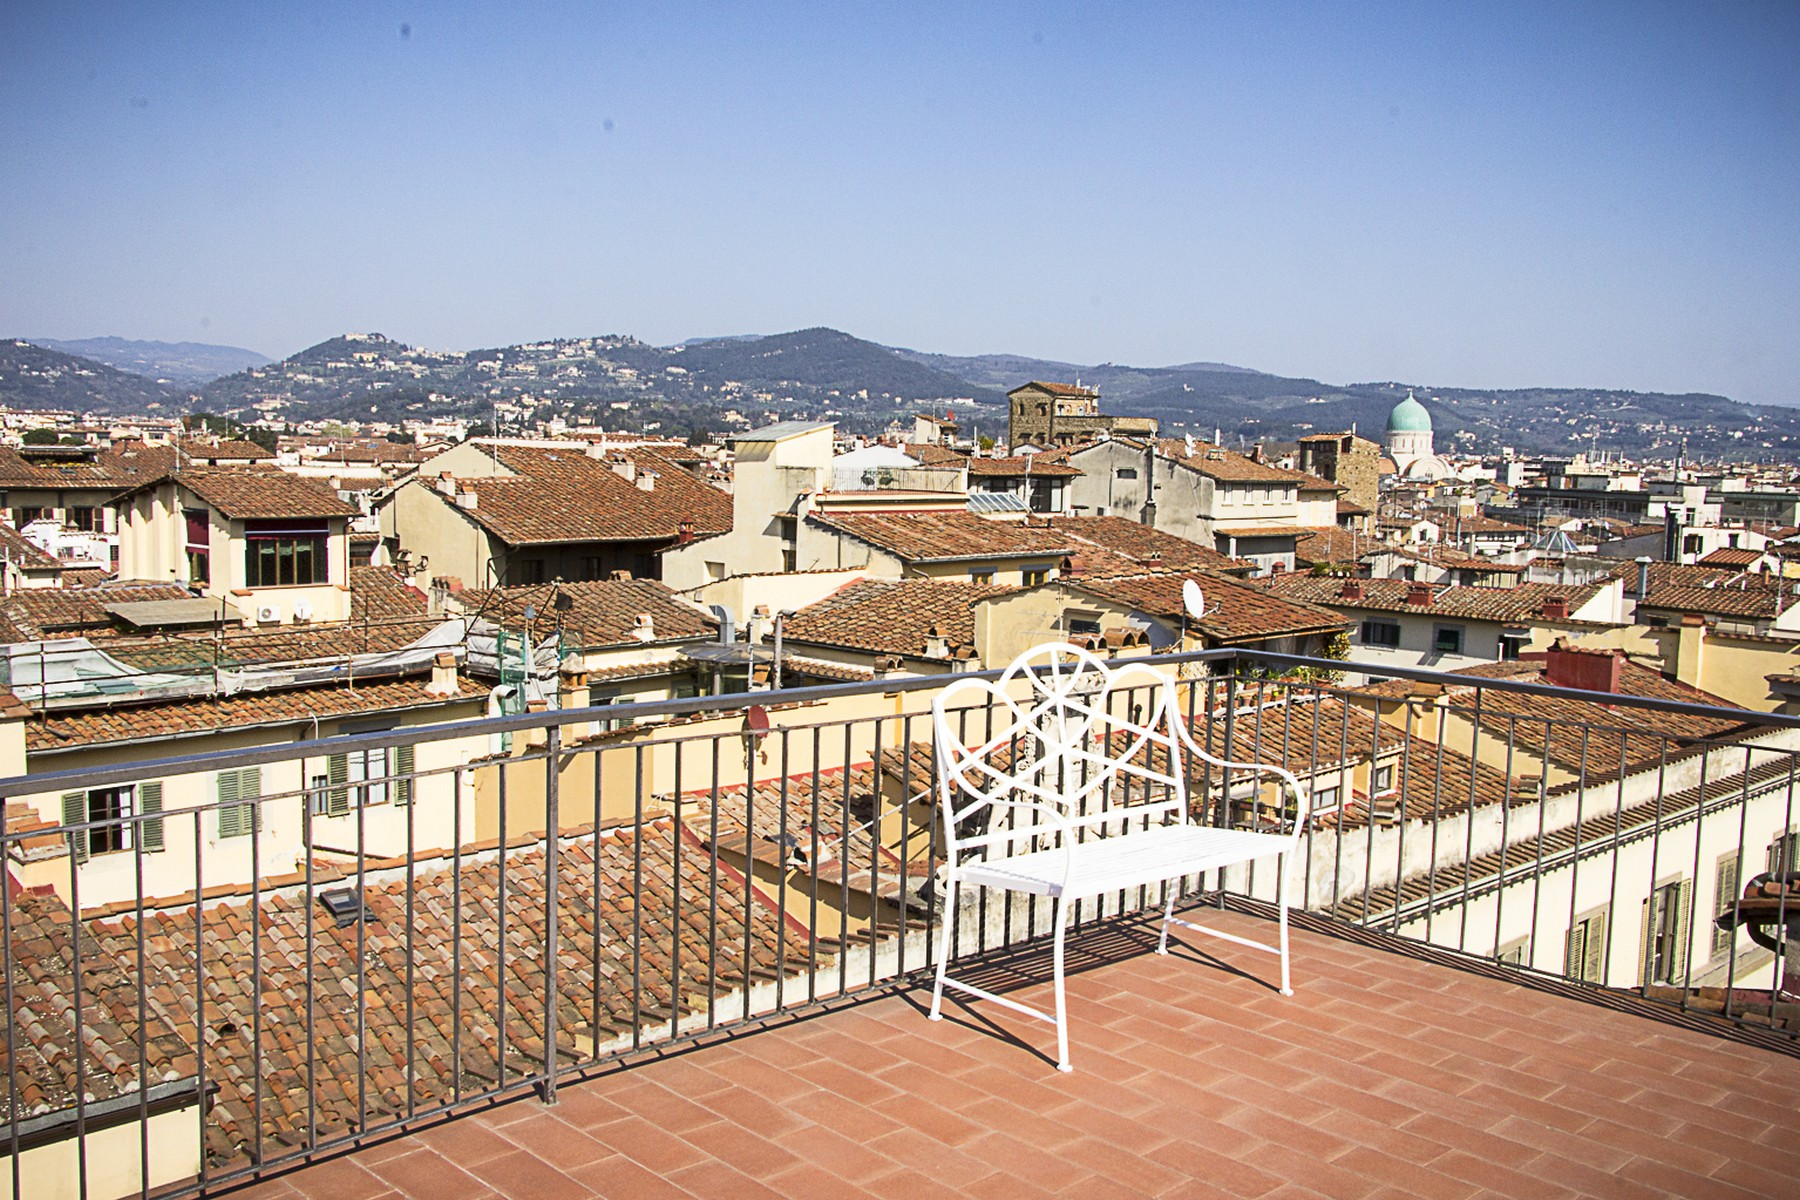 Additional photo for property listing at Historic palace close to the Bargello museum Via Ghibellina Firenze, Florence 50100 Italie